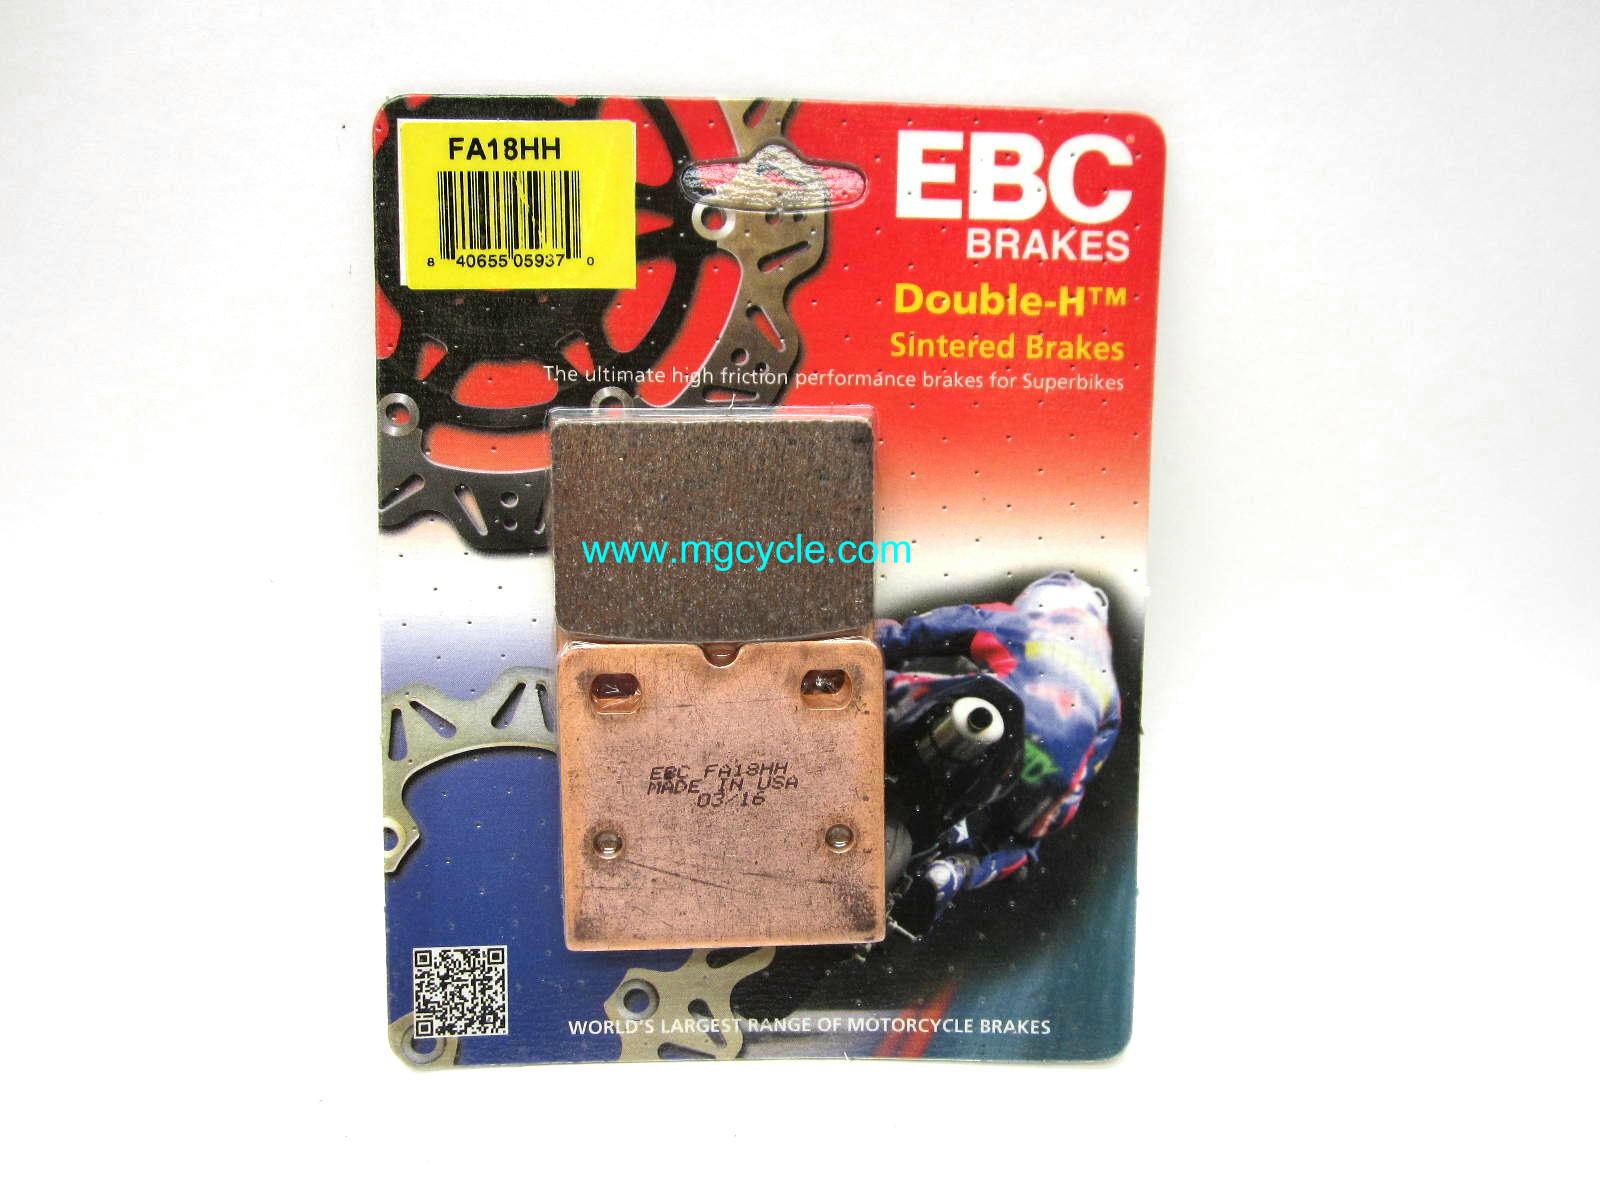 EBC HH brake pads for F08 caliper, sintered Big Twin Guzzi